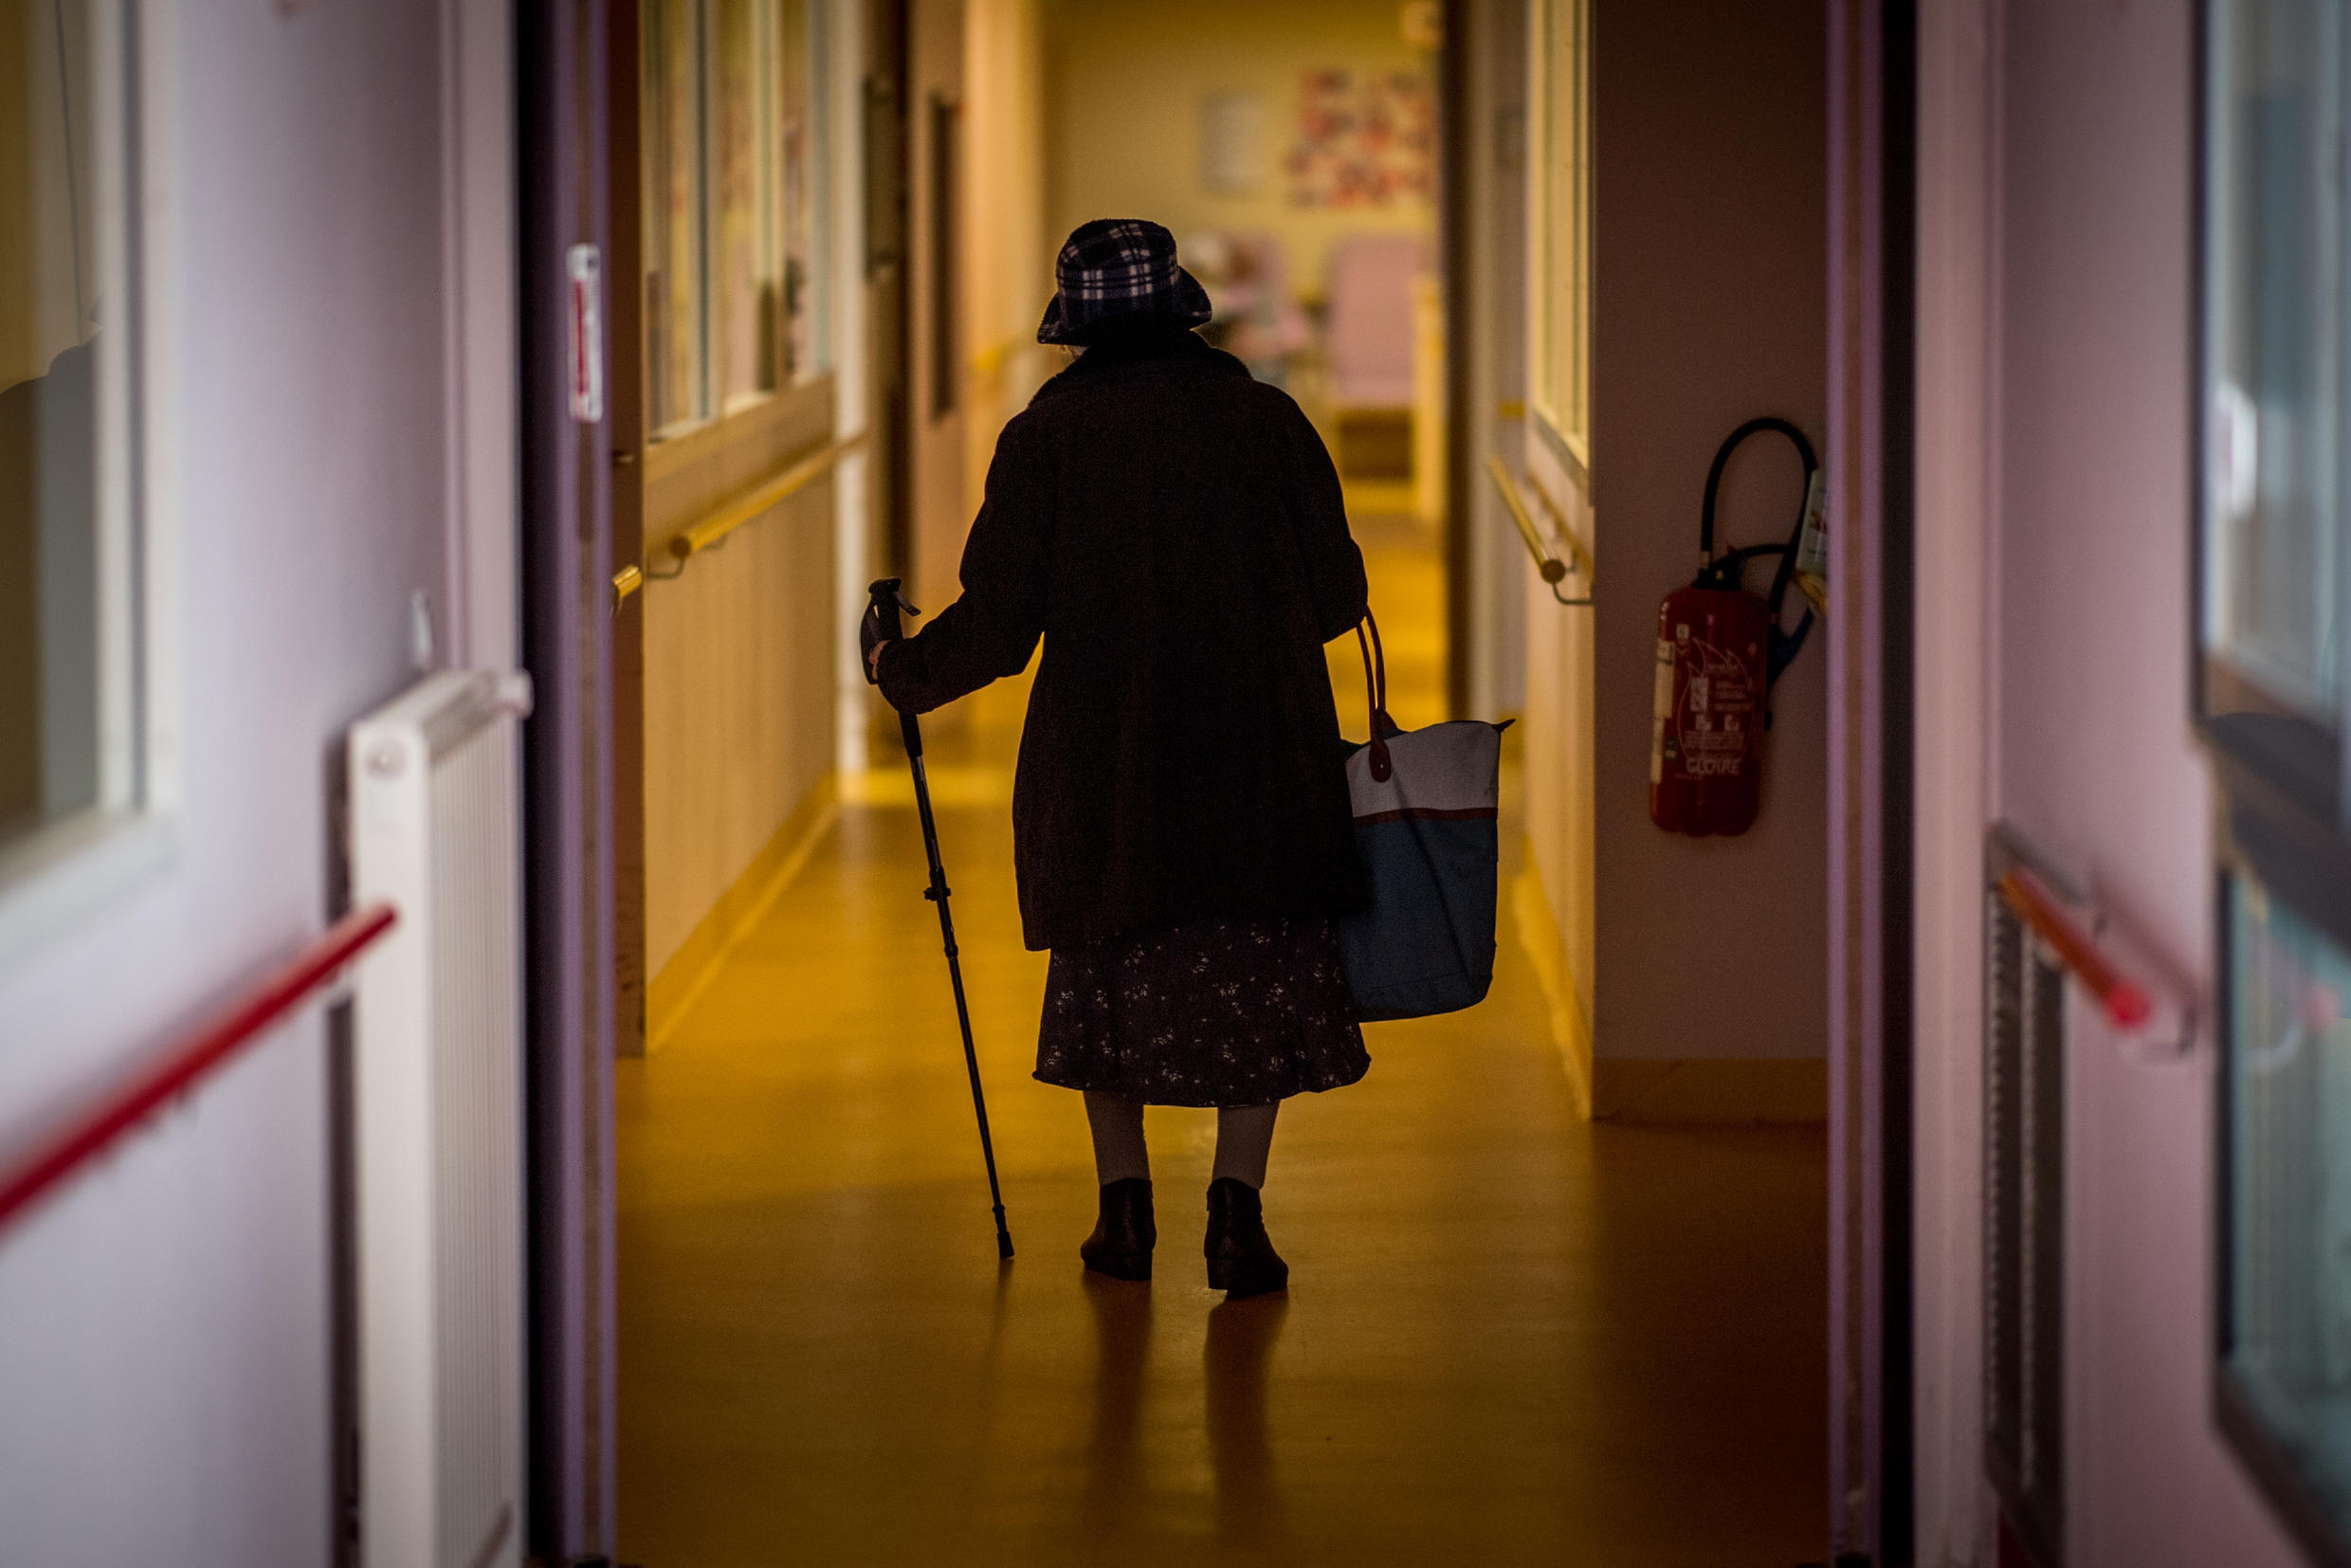 A resident of a care home in Brittany, pictured on March 4, 2020.